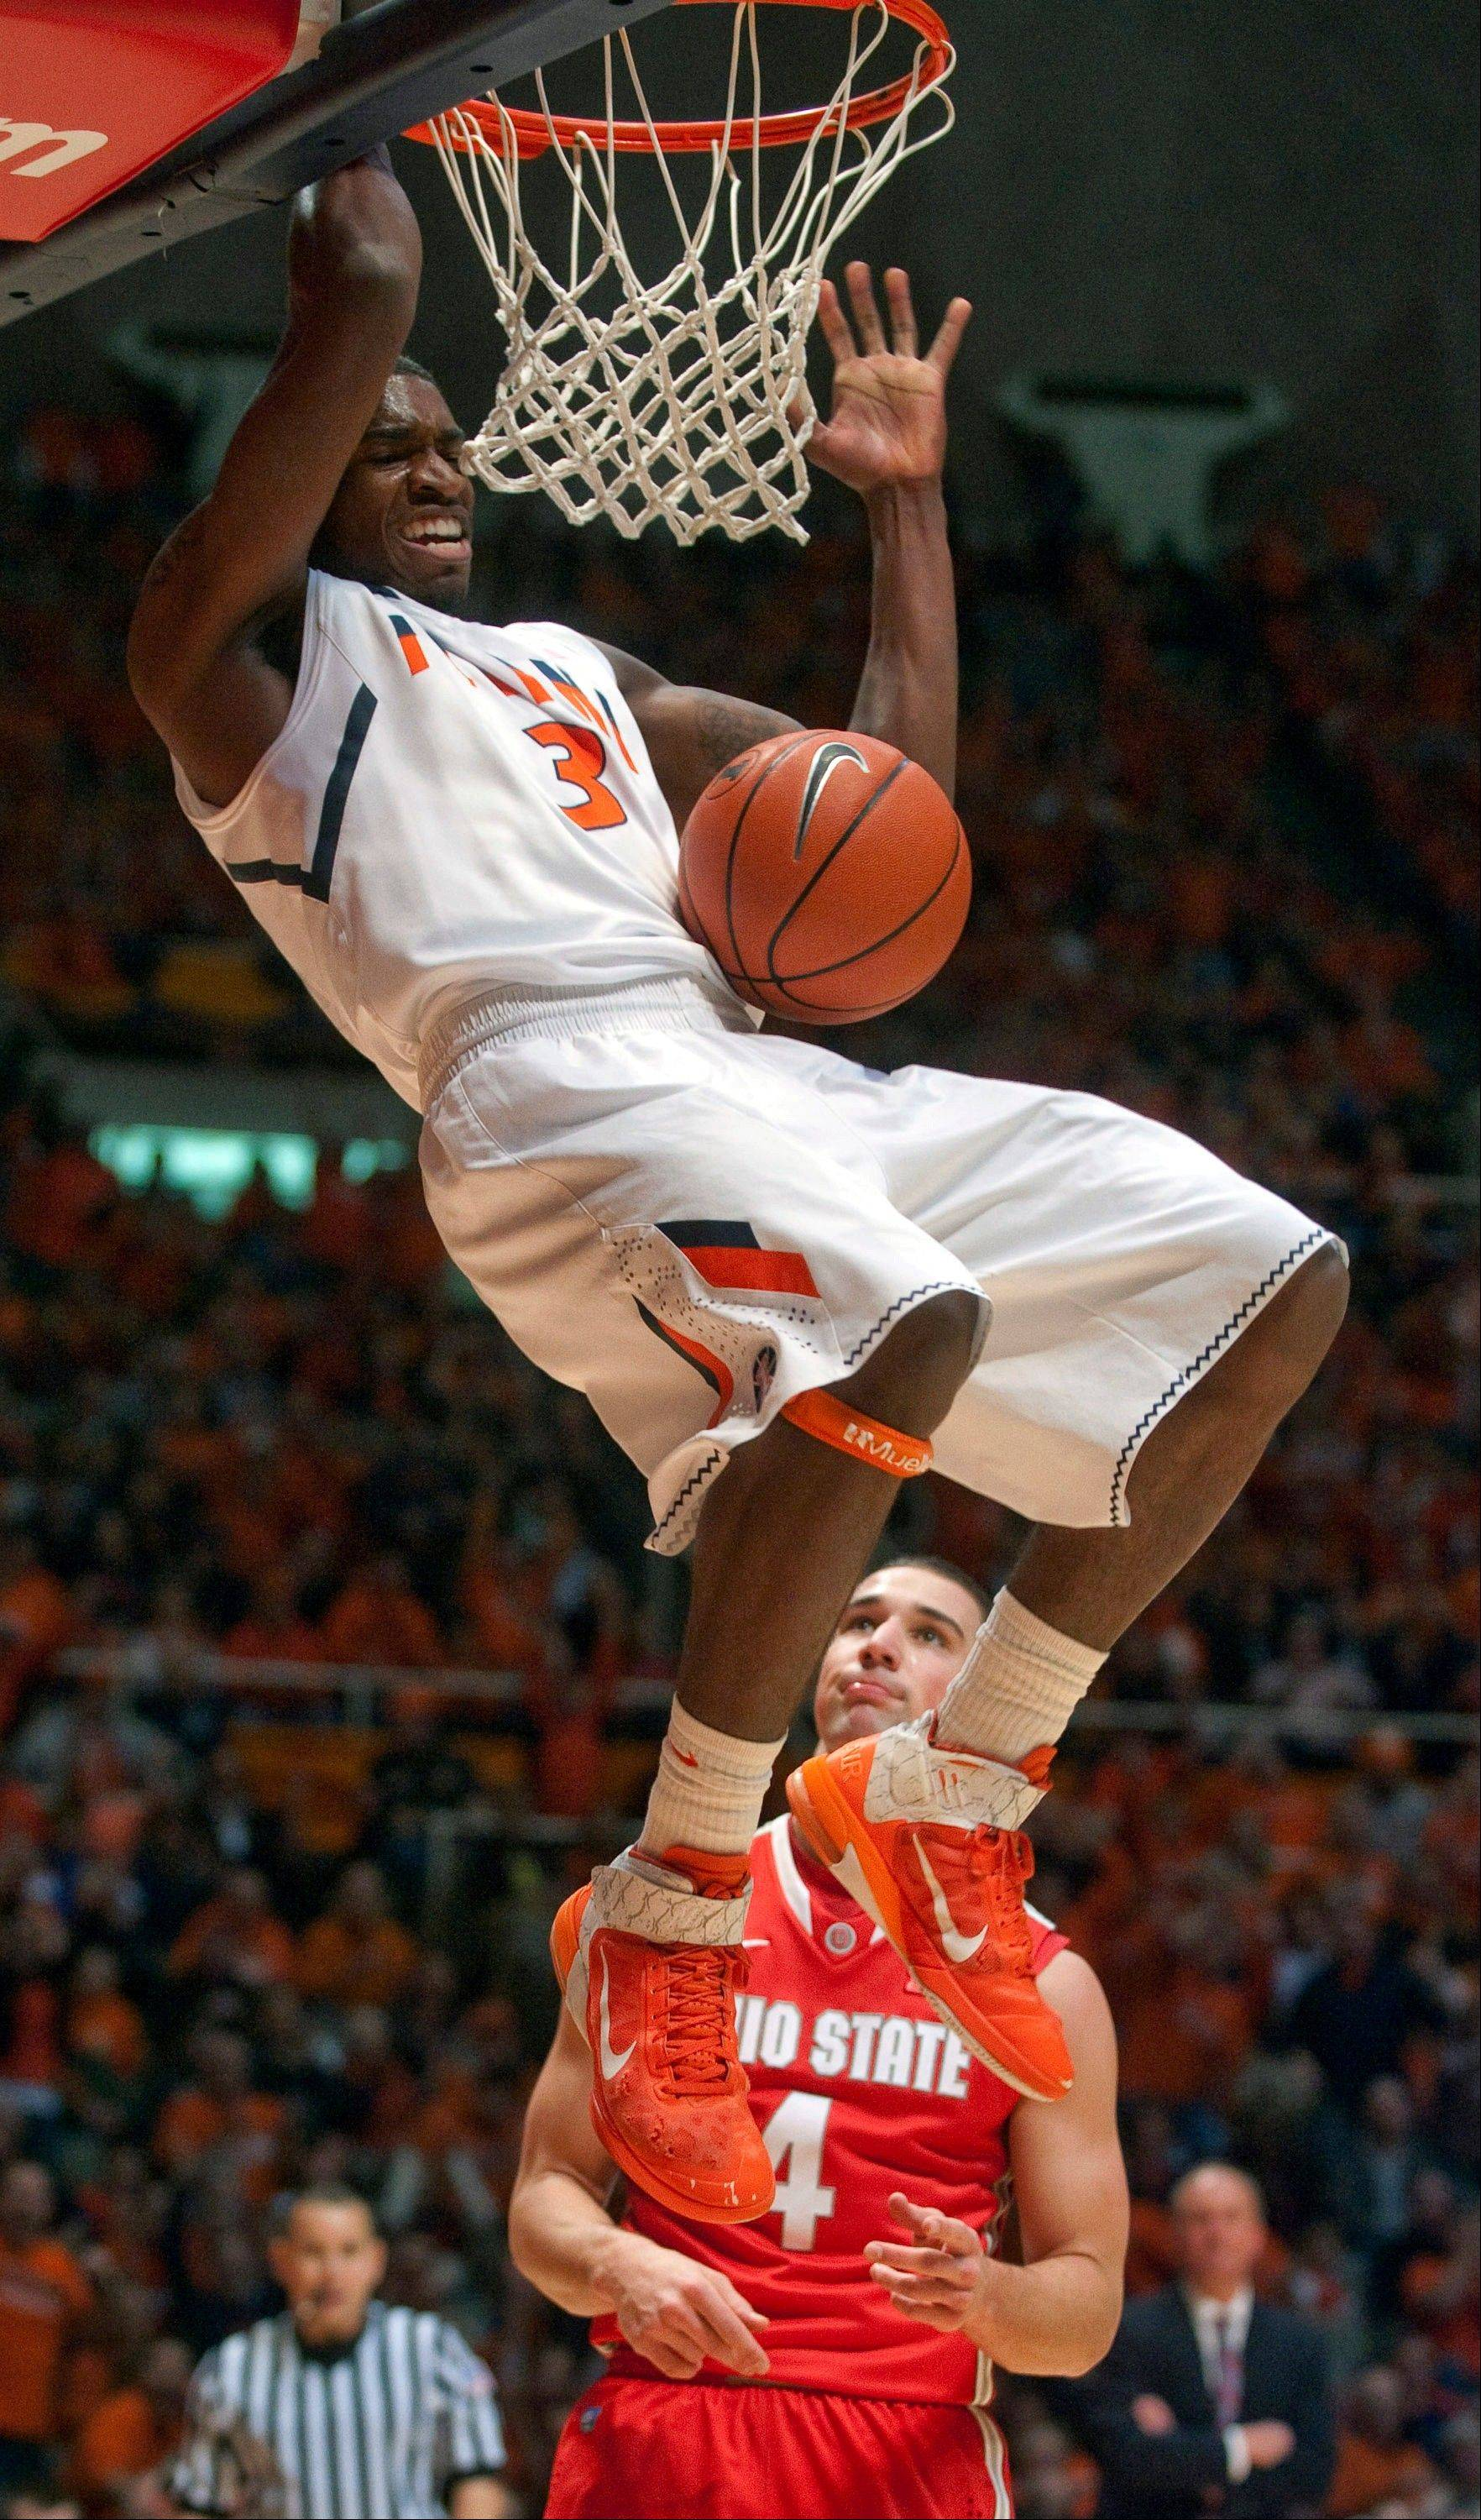 Illinois guard Brandon Paul dunks during his team's upset of No. 8 Ohio State Saturday in Champaign. After a loss to unranked Purdue and the big upset over the Buckeyes, the Illini are now ranked No. 12 in the country by The Associated Press.